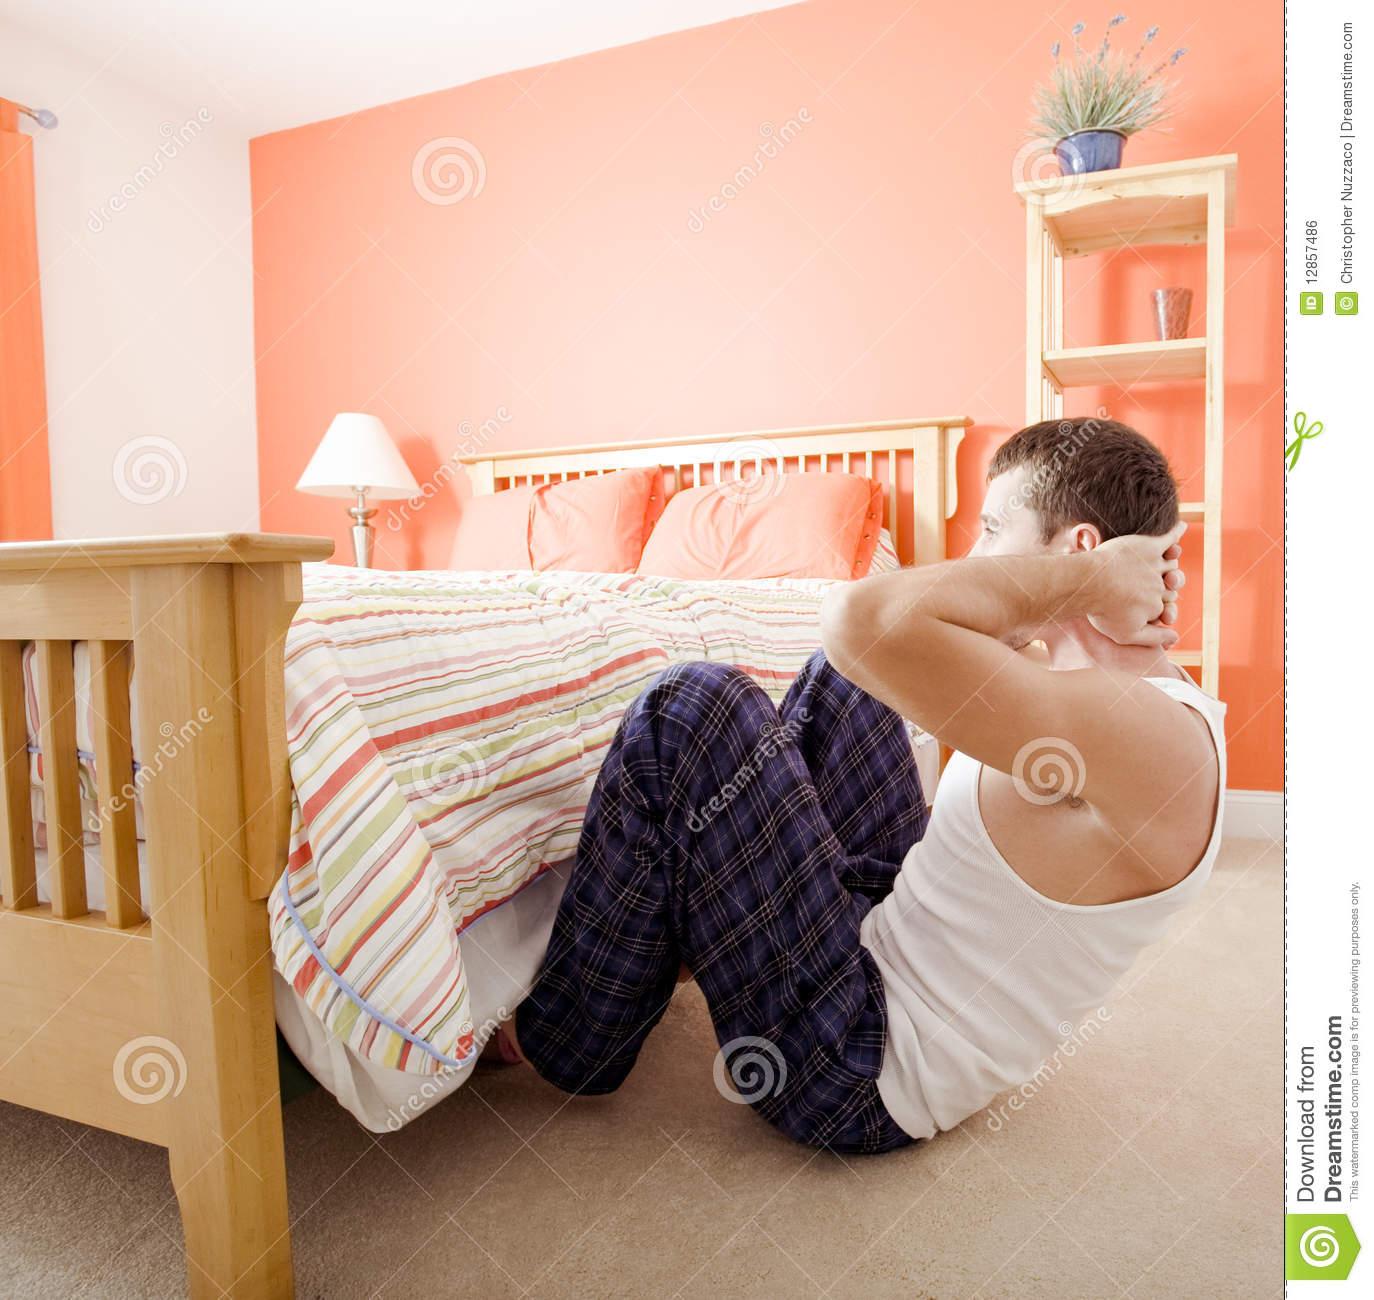 Man doing sit ups in bedroom stock photo image 12857486 for Beds that sit up